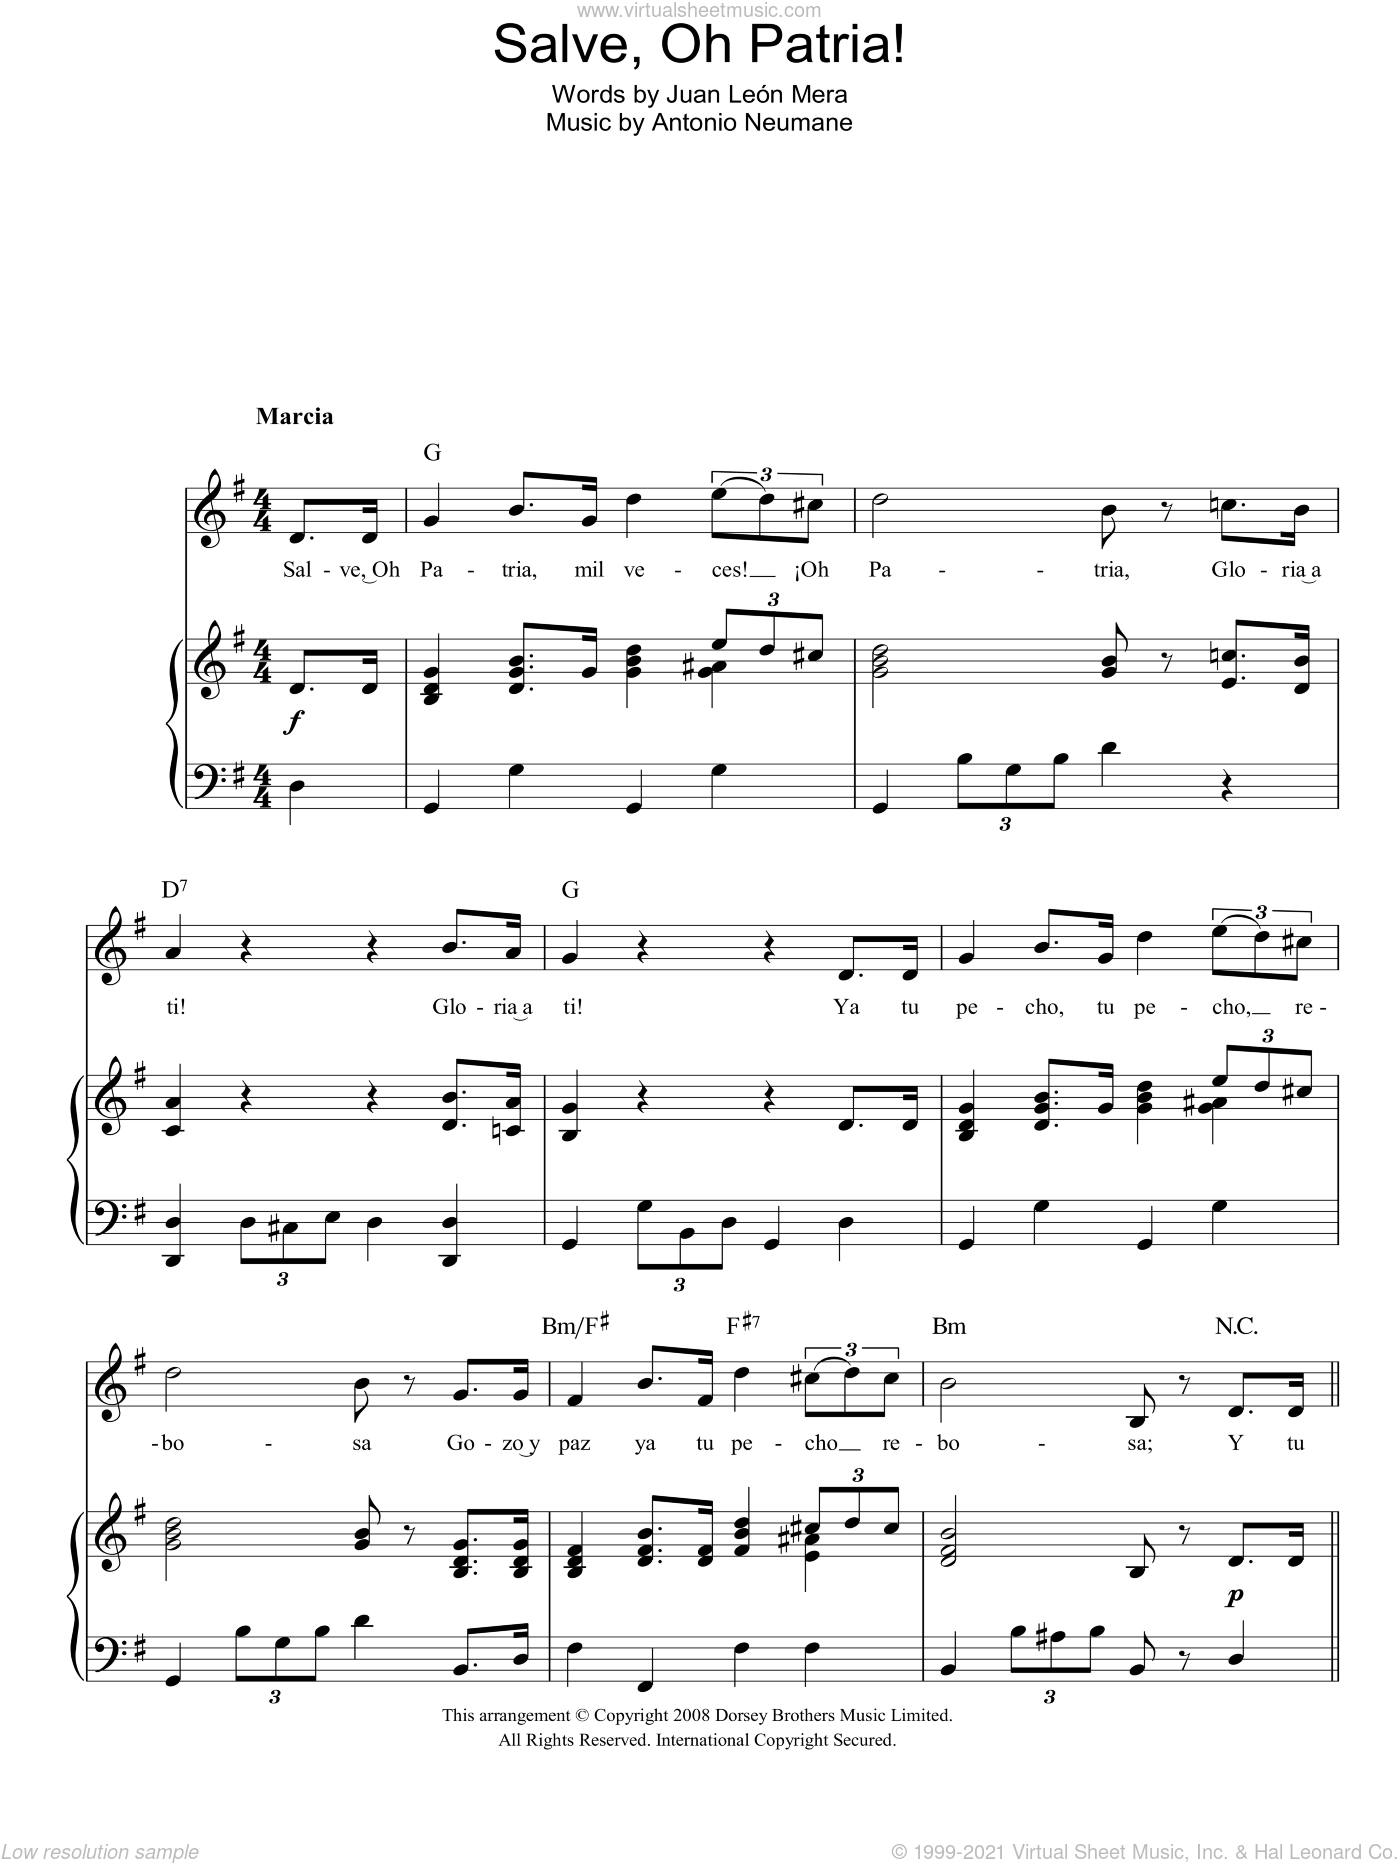 Salve, Oh Patria! (Ecuadorian National Anthem) sheet music for voice, piano or guitar by Antonio Neumane and Juan Leon Mera, intermediate. Score Image Preview.